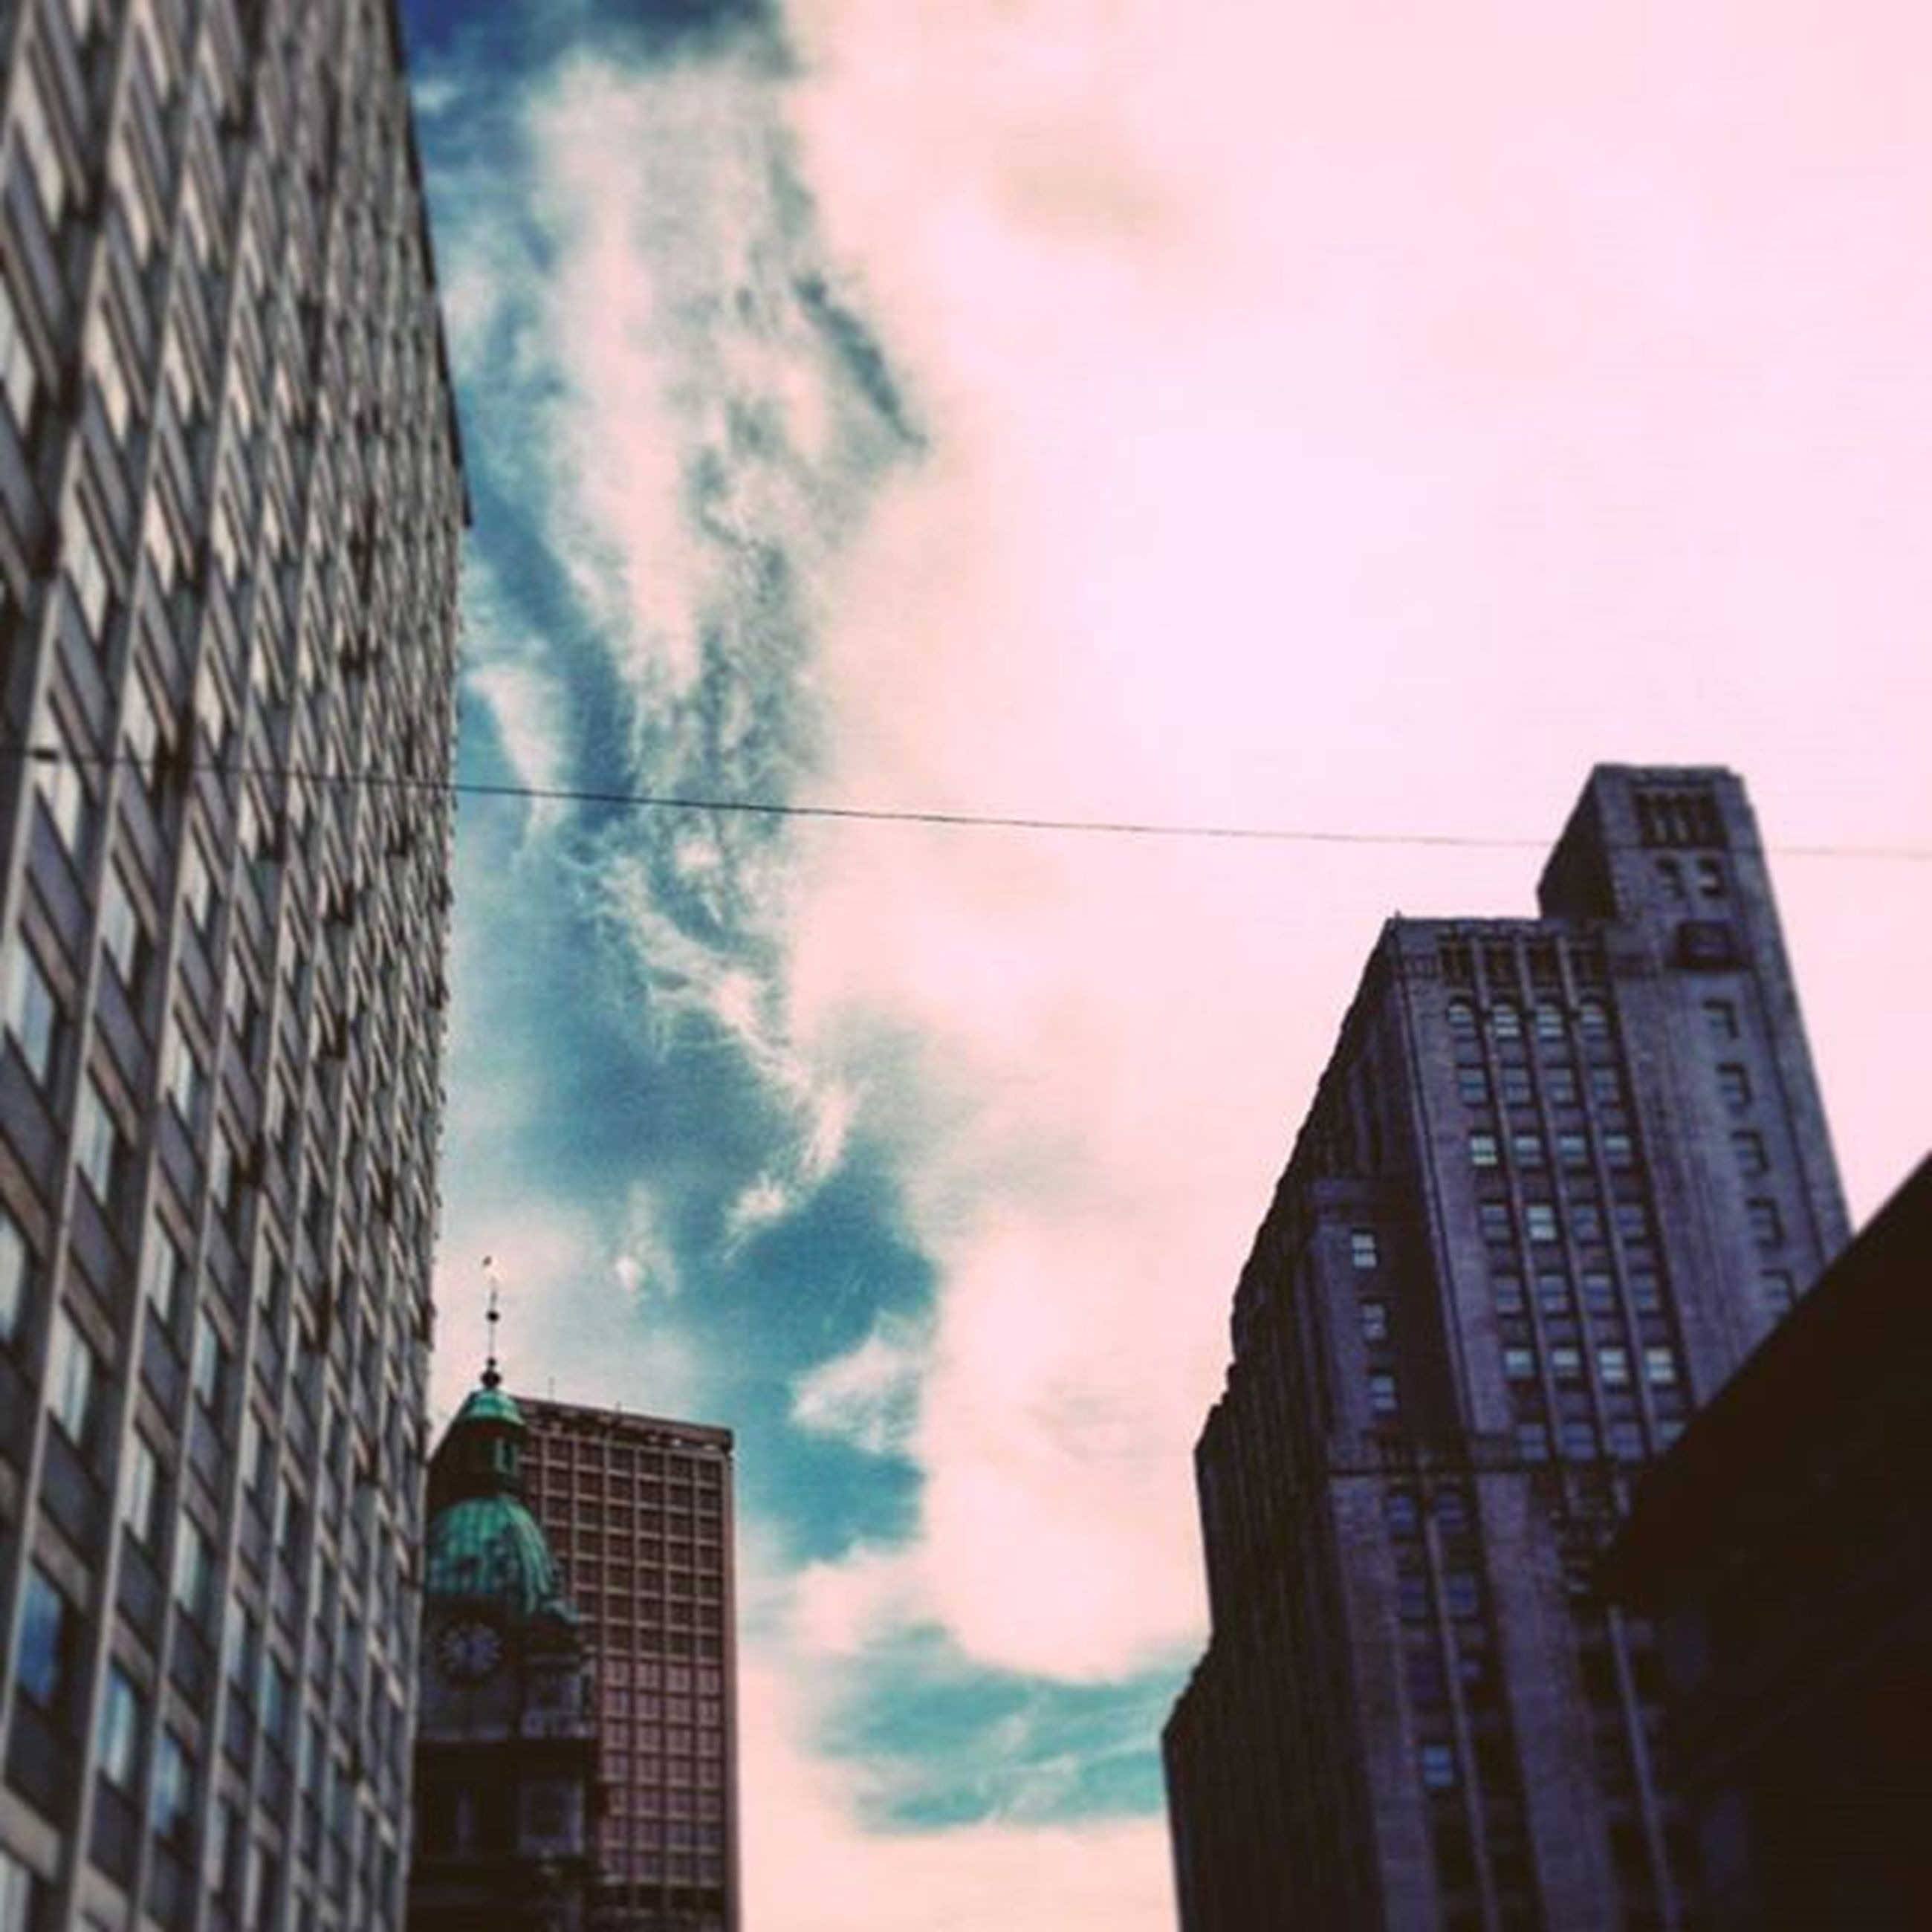 building exterior, architecture, built structure, low angle view, city, sky, skyscraper, cloud - sky, building, office building, modern, tall - high, cloudy, tower, cloud, residential building, outdoors, silhouette, glass - material, no people